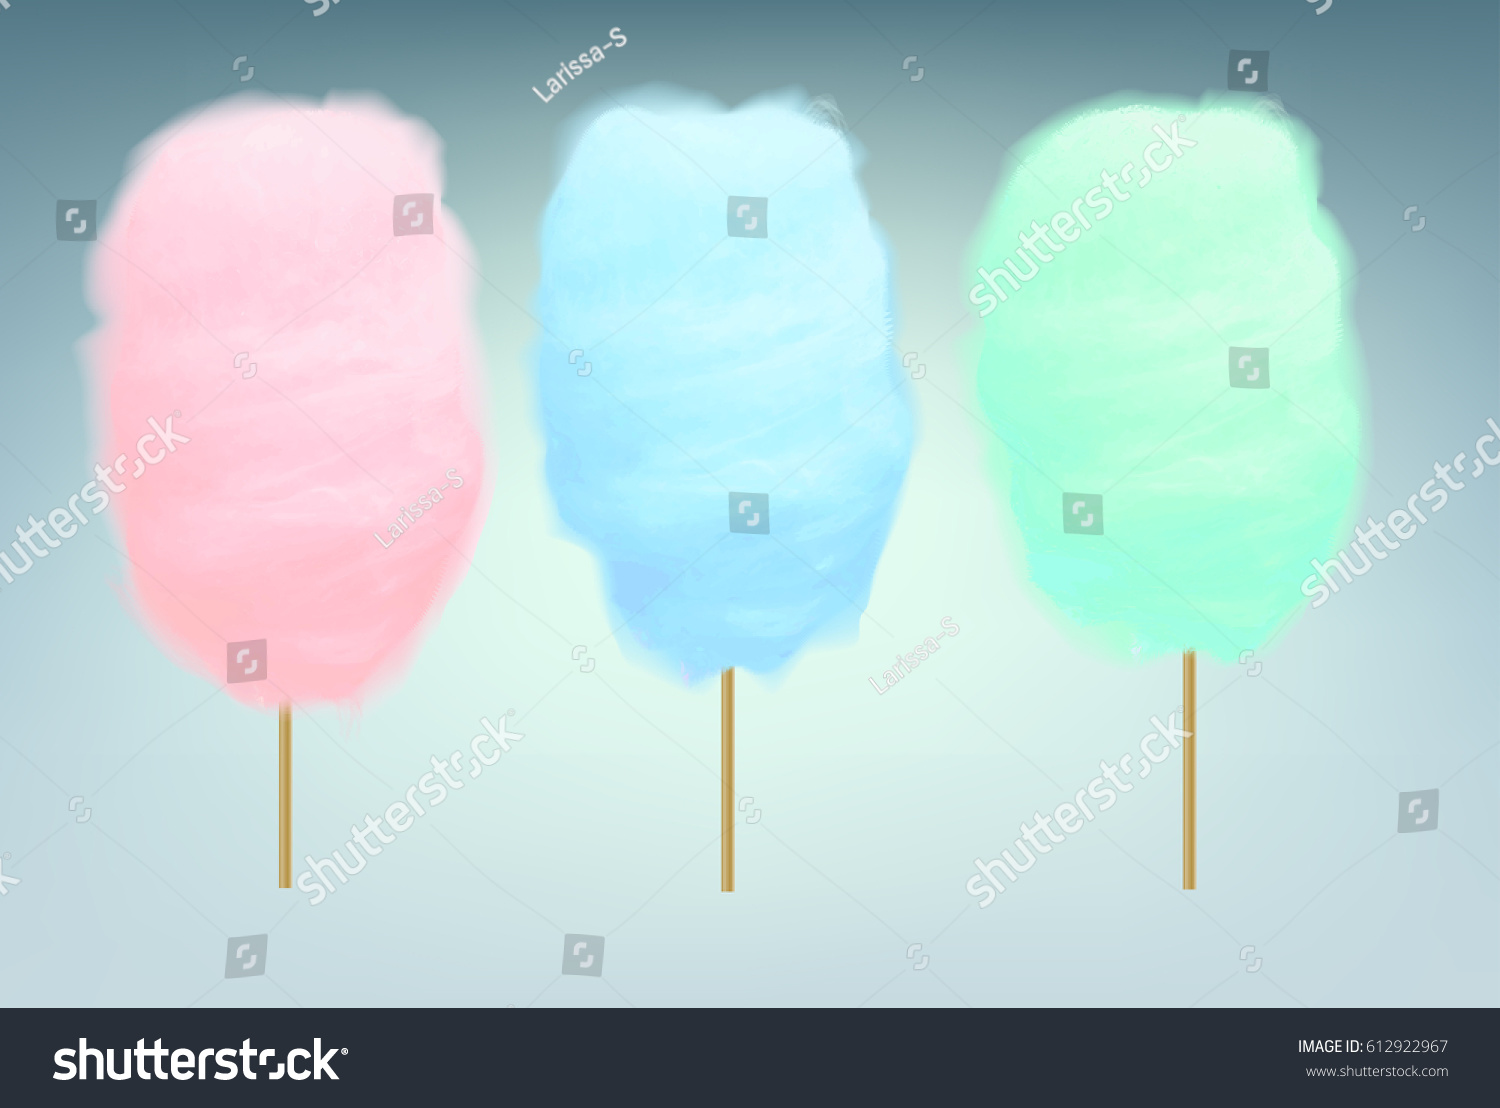 Pink, blue and green cotton candy. Realistic sugar clouds with wooden sticks. Vector isolated objects illustration.